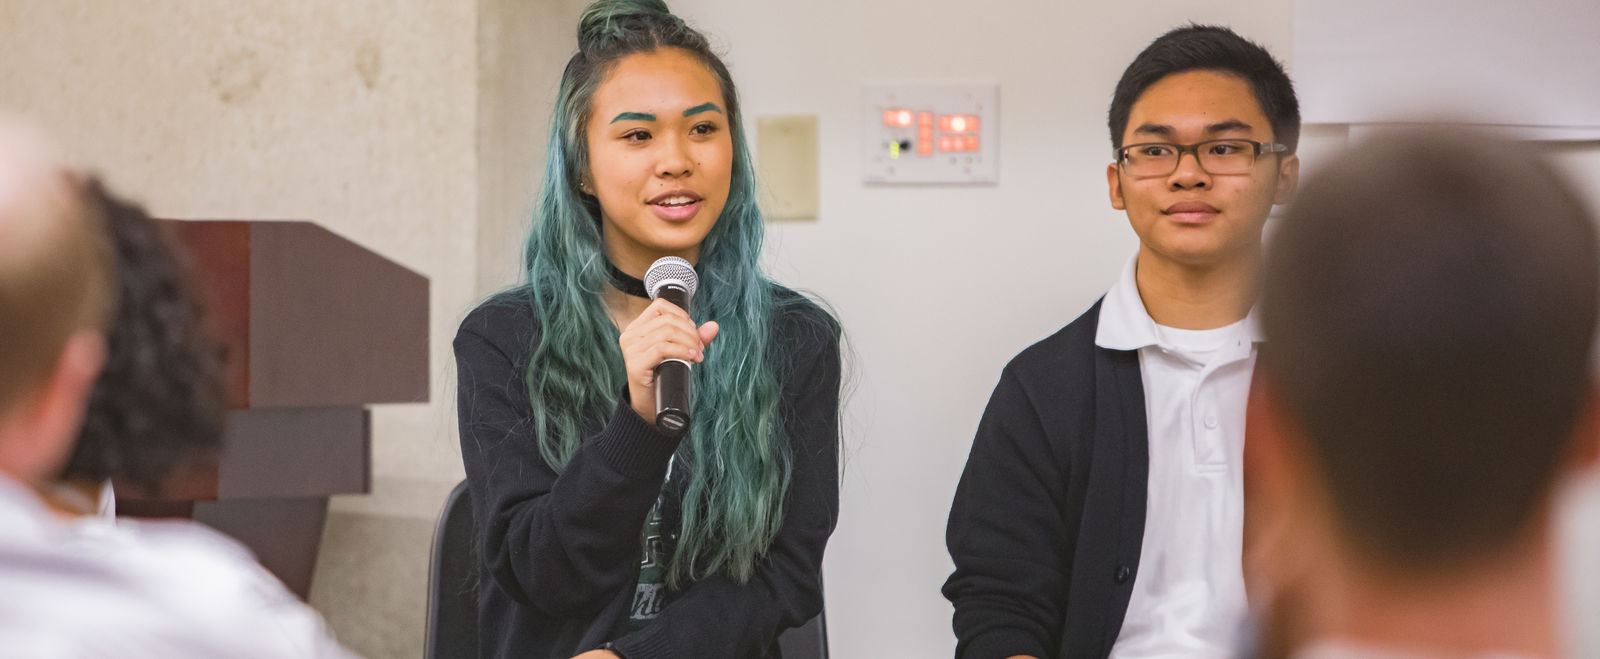 Two students answer questions during a school panel discussion.